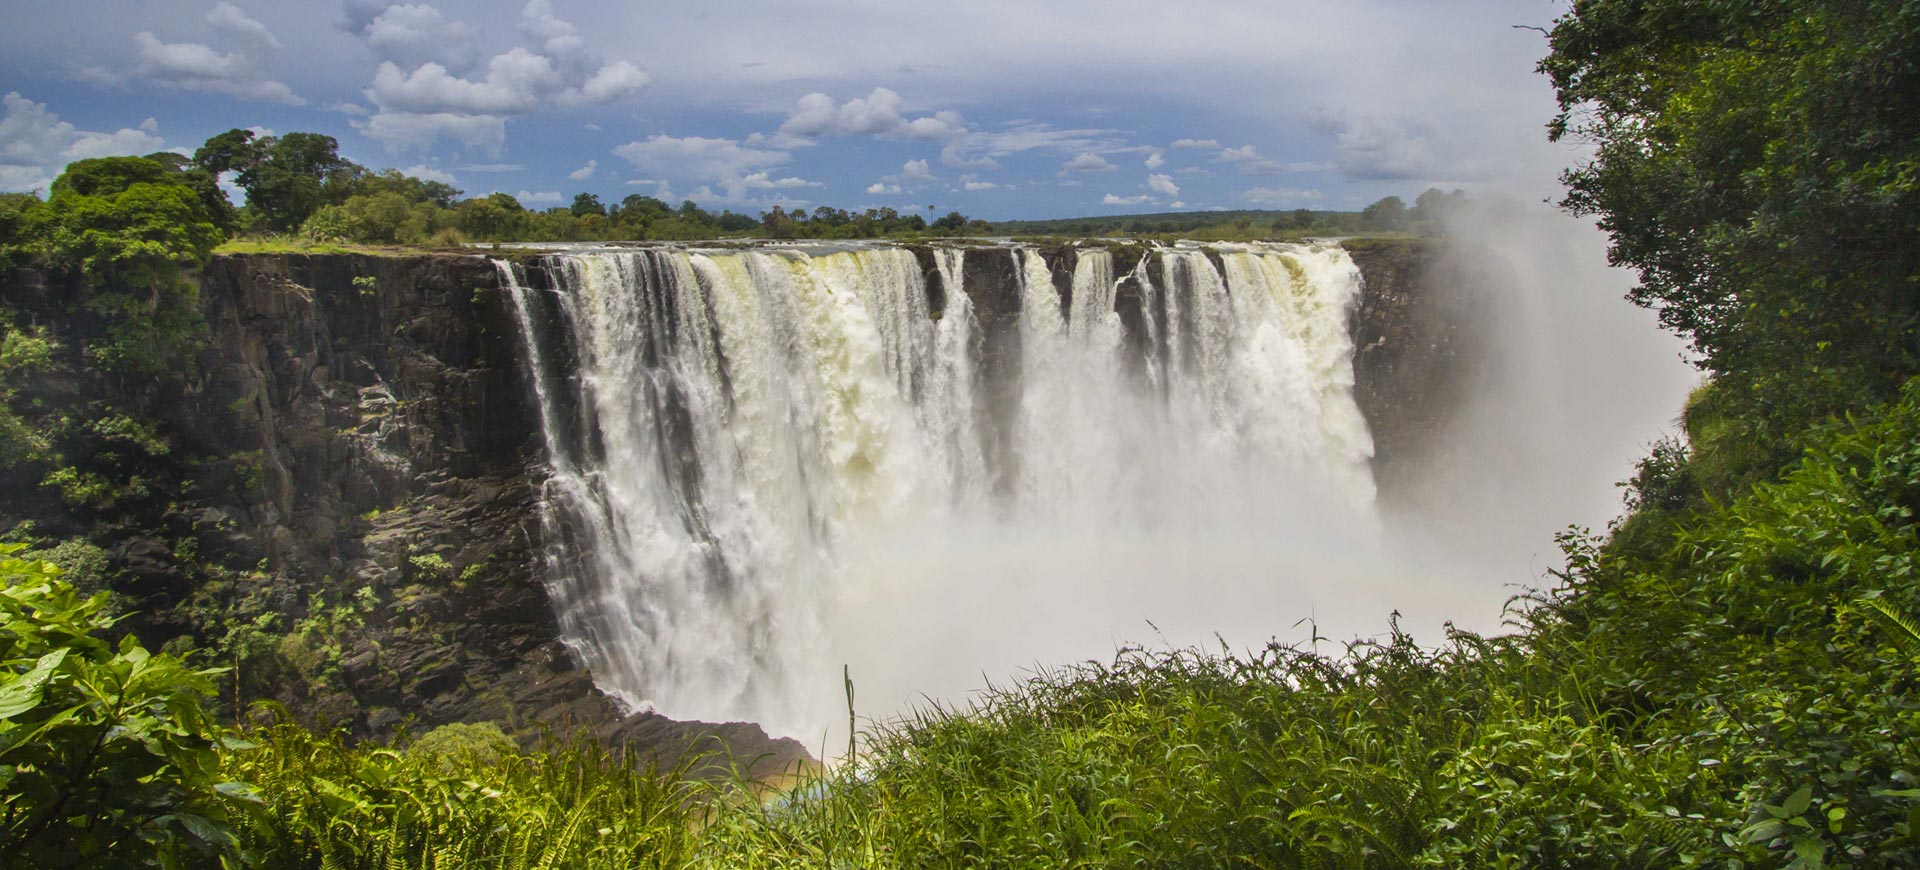 Guided Waterfall Tour Victoria Falls